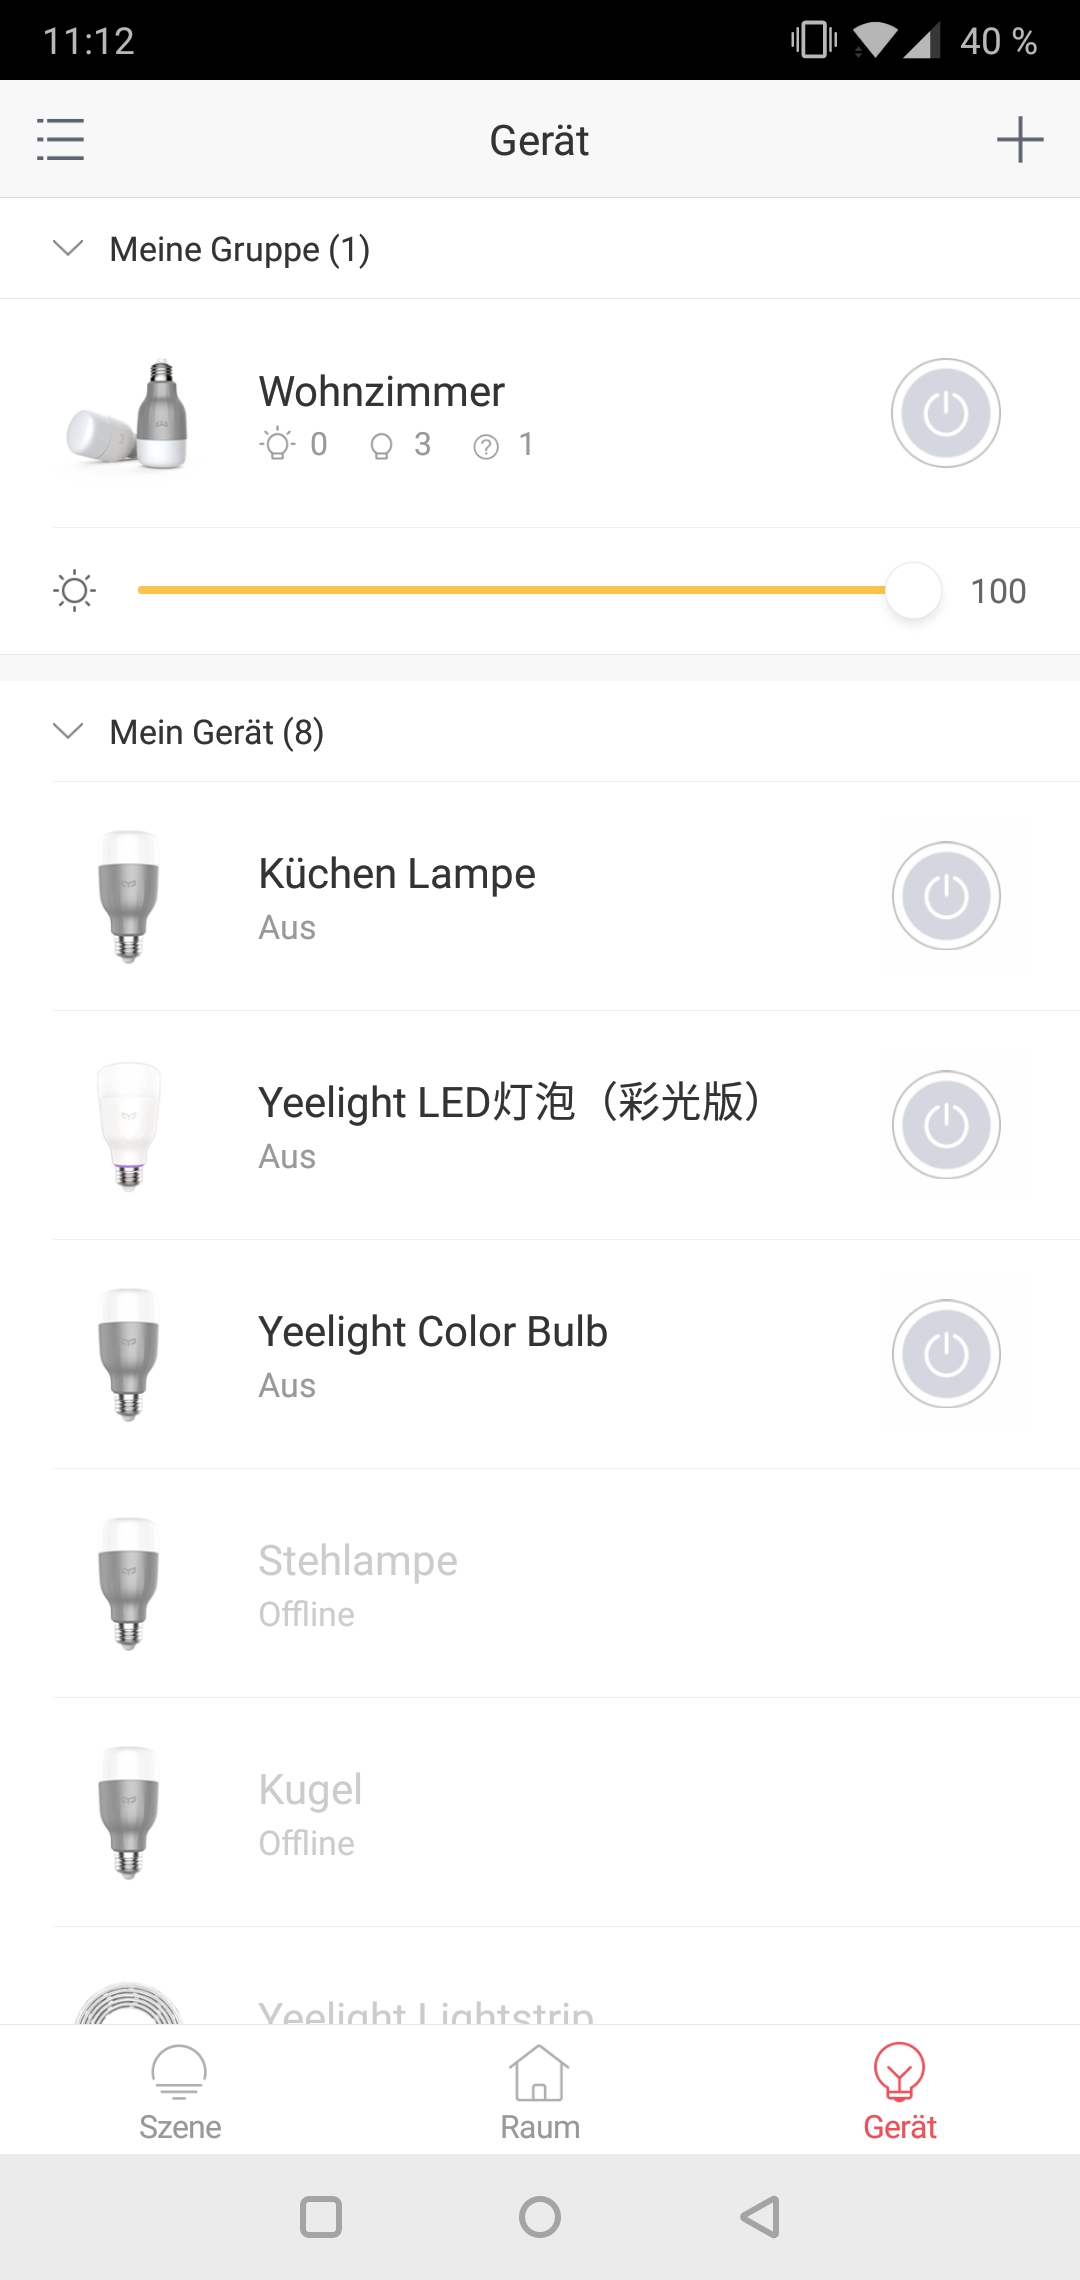 Yeelight 2nd Generation Smart Bulb Glühbirne Testbericht Screenshot Yeelight App Google Smart Home 7